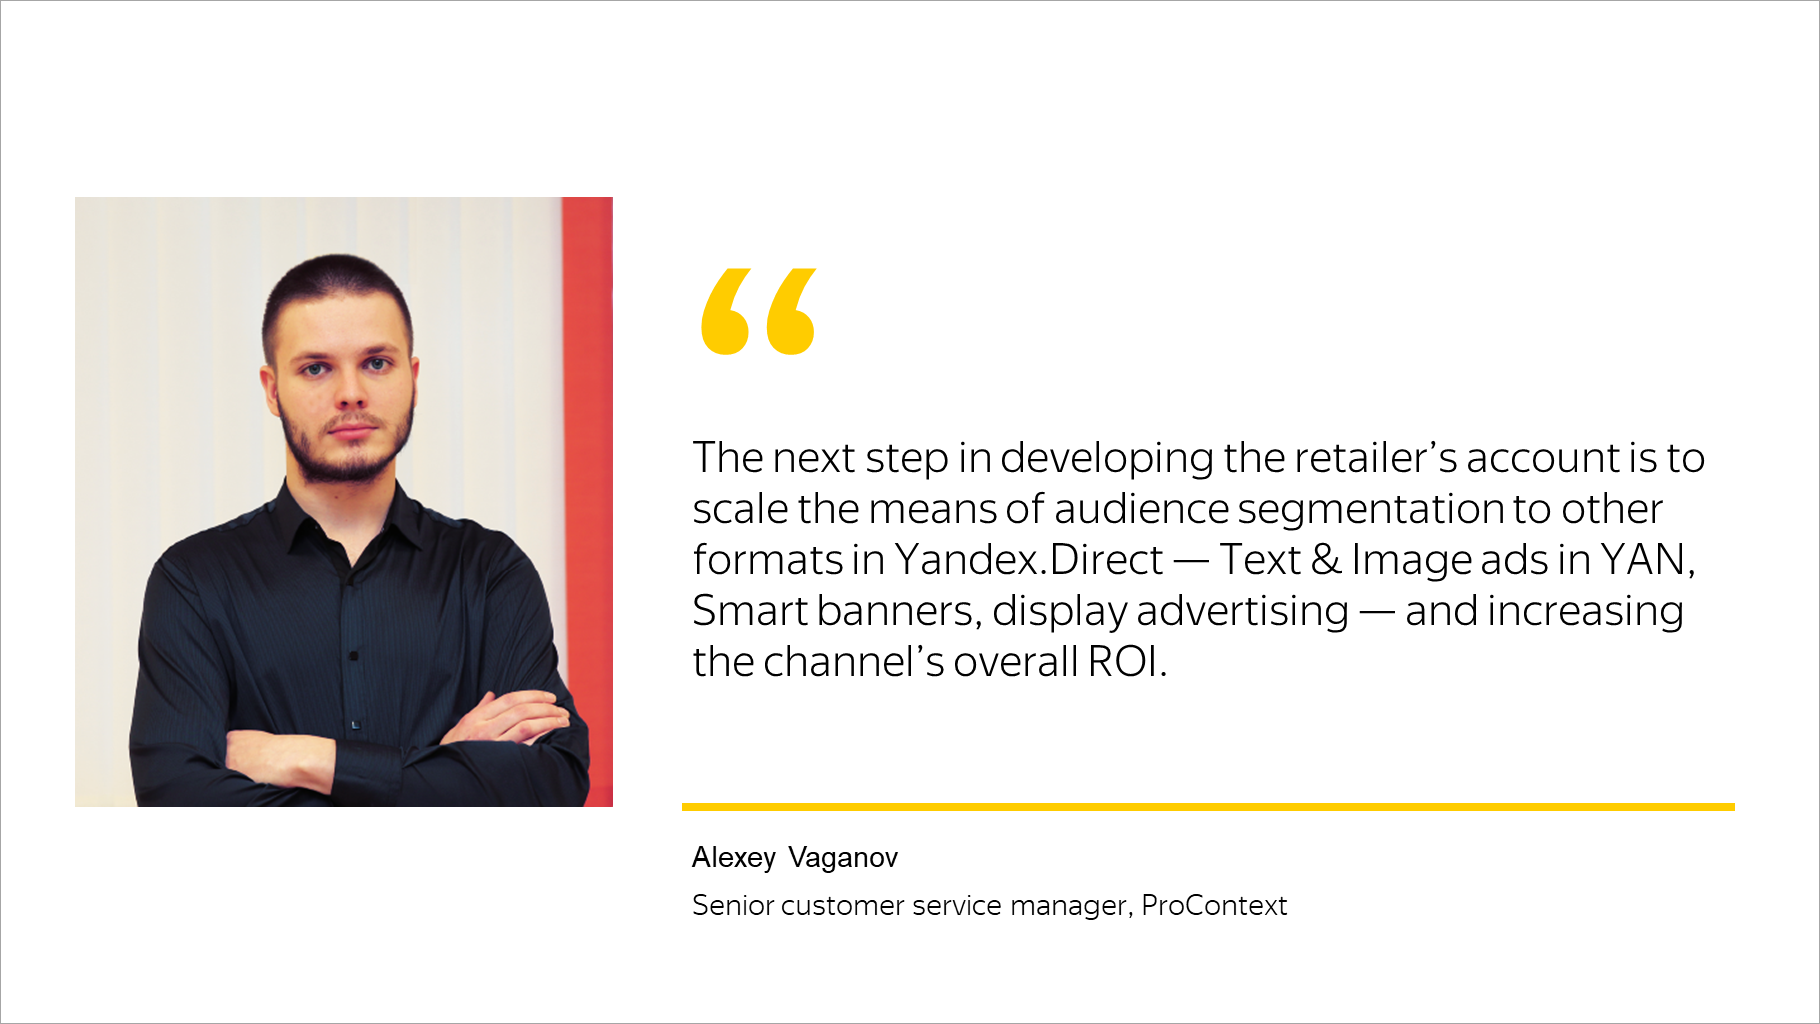 The next step in developing the retailer's account is to scale the means of audience segmentation to other formats in Yandex.Direct — Text & Image ads in YAN, Smart banners, display advertising — and increasing the channel's overall ROI.